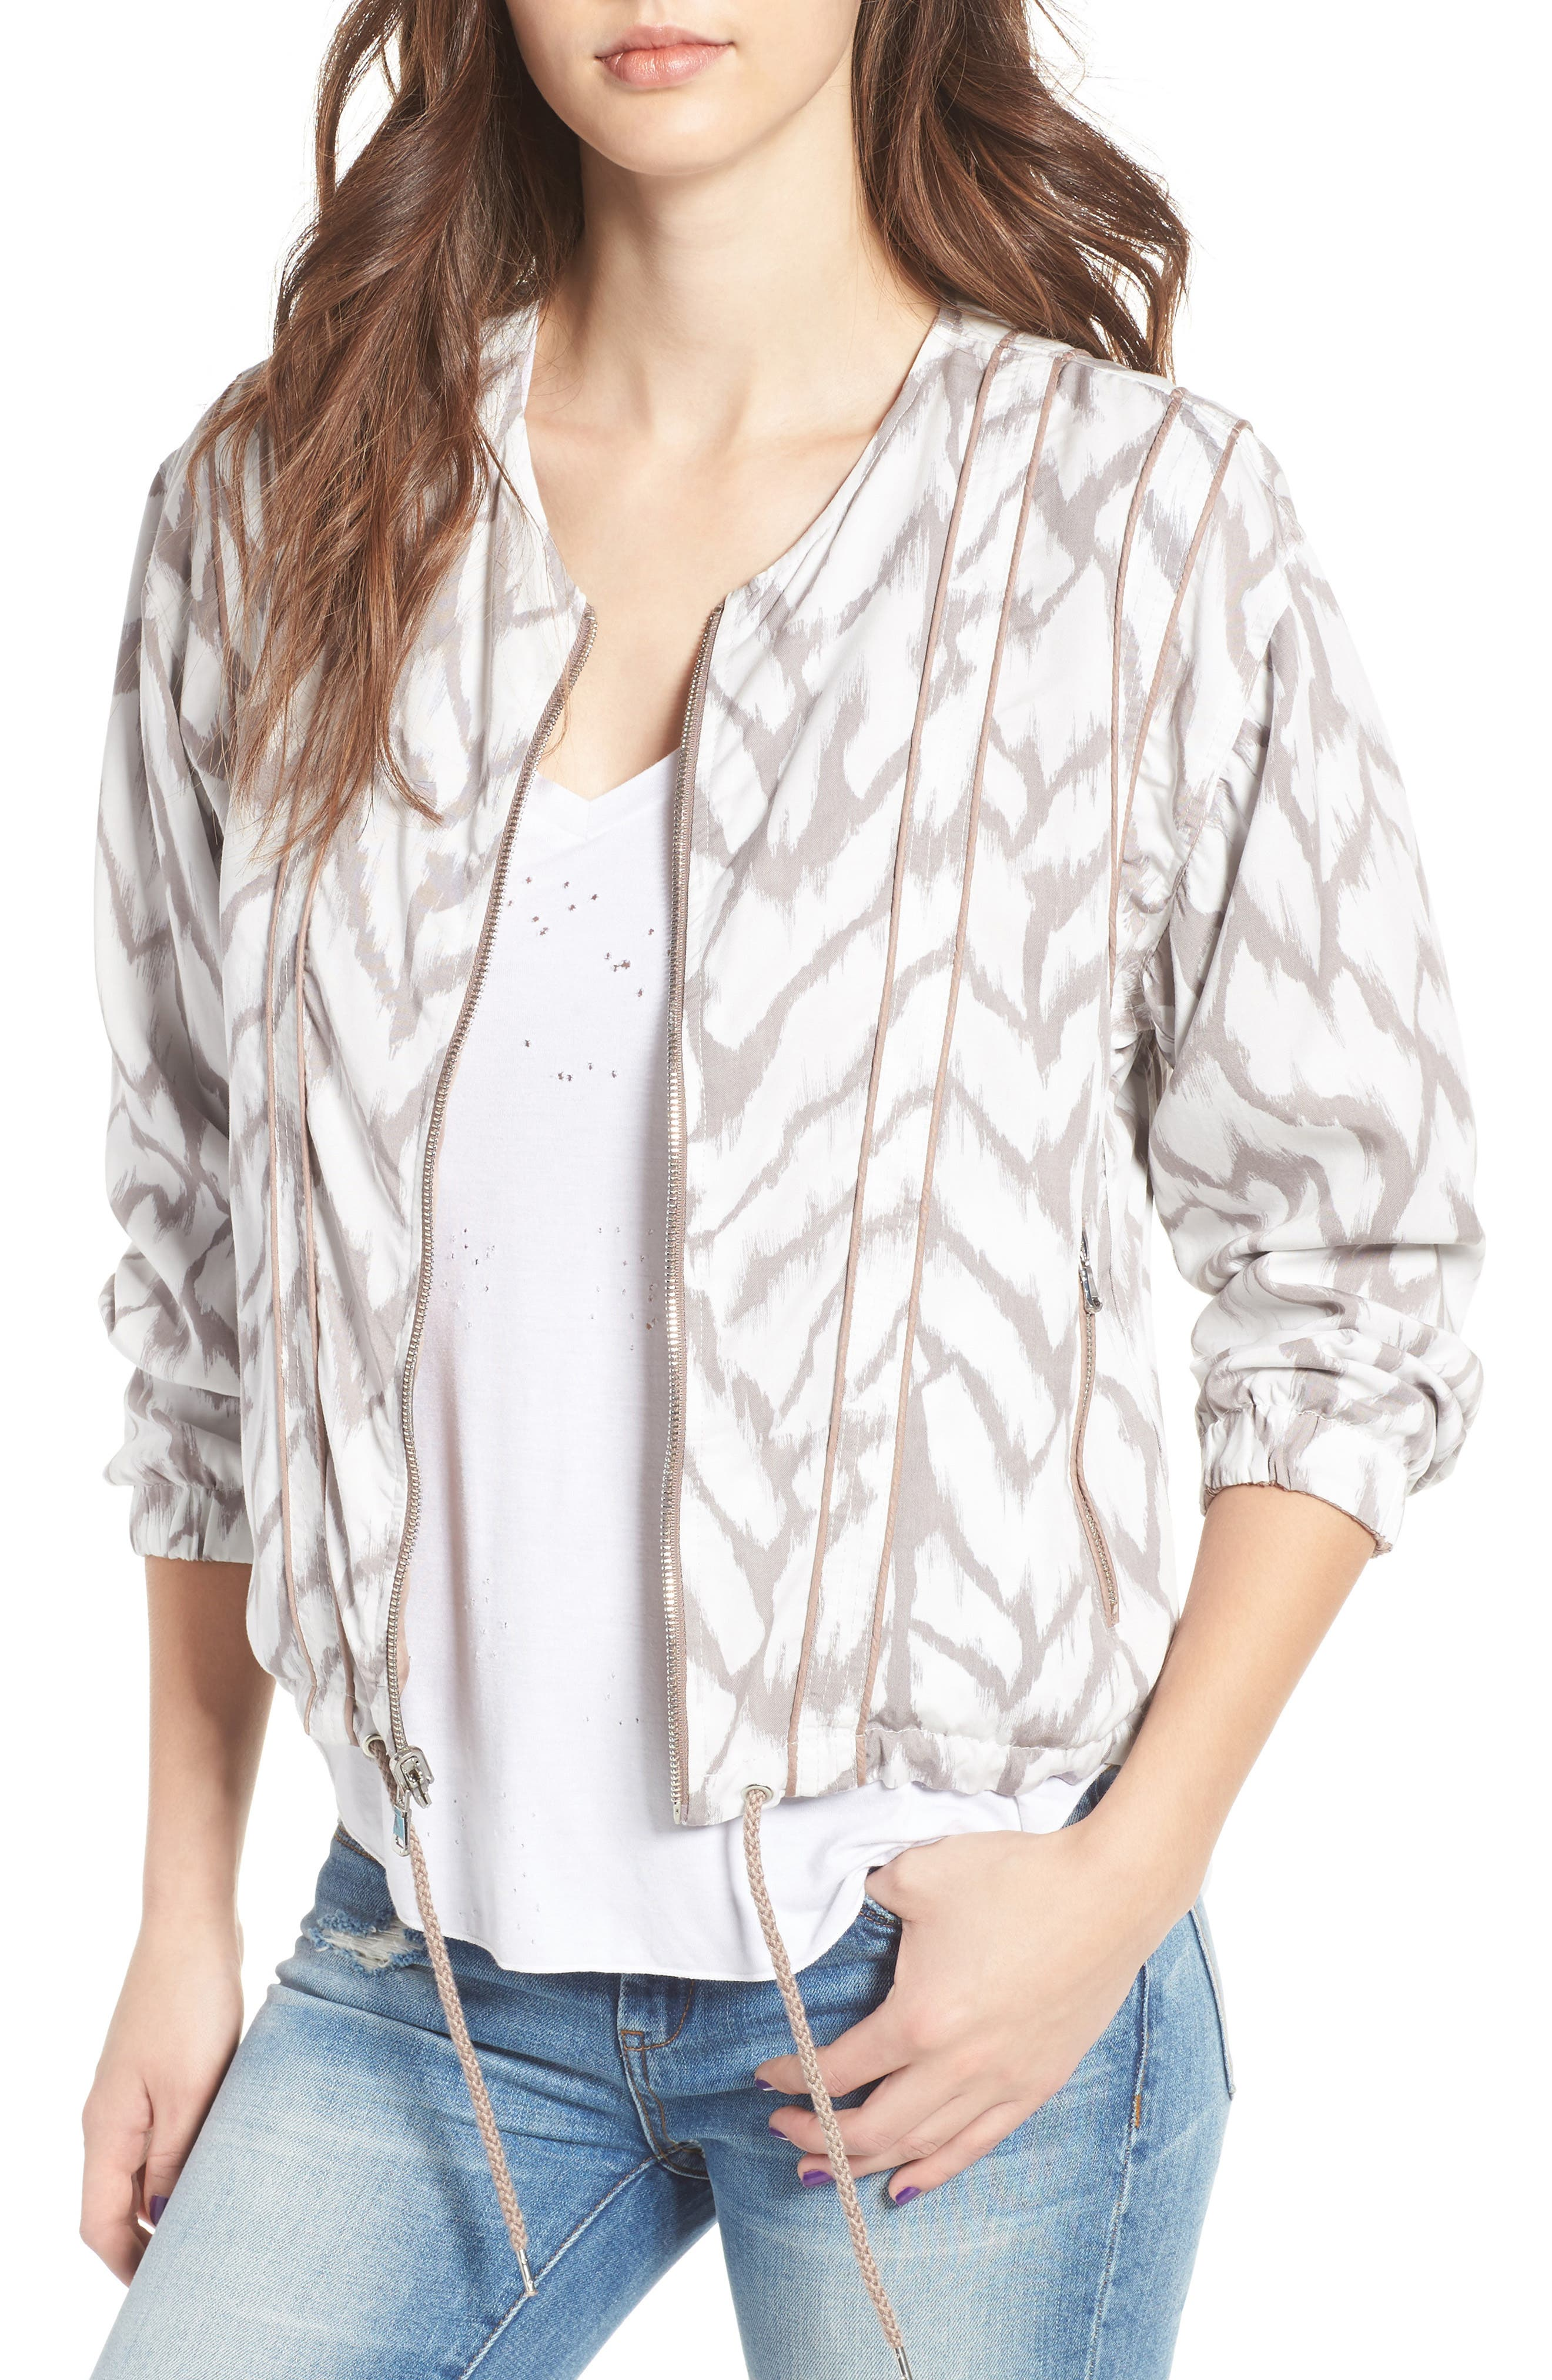 Deep Truth Reversible Jacket,                             Main thumbnail 1, color,                             Deep Truth Taupe/ White Print